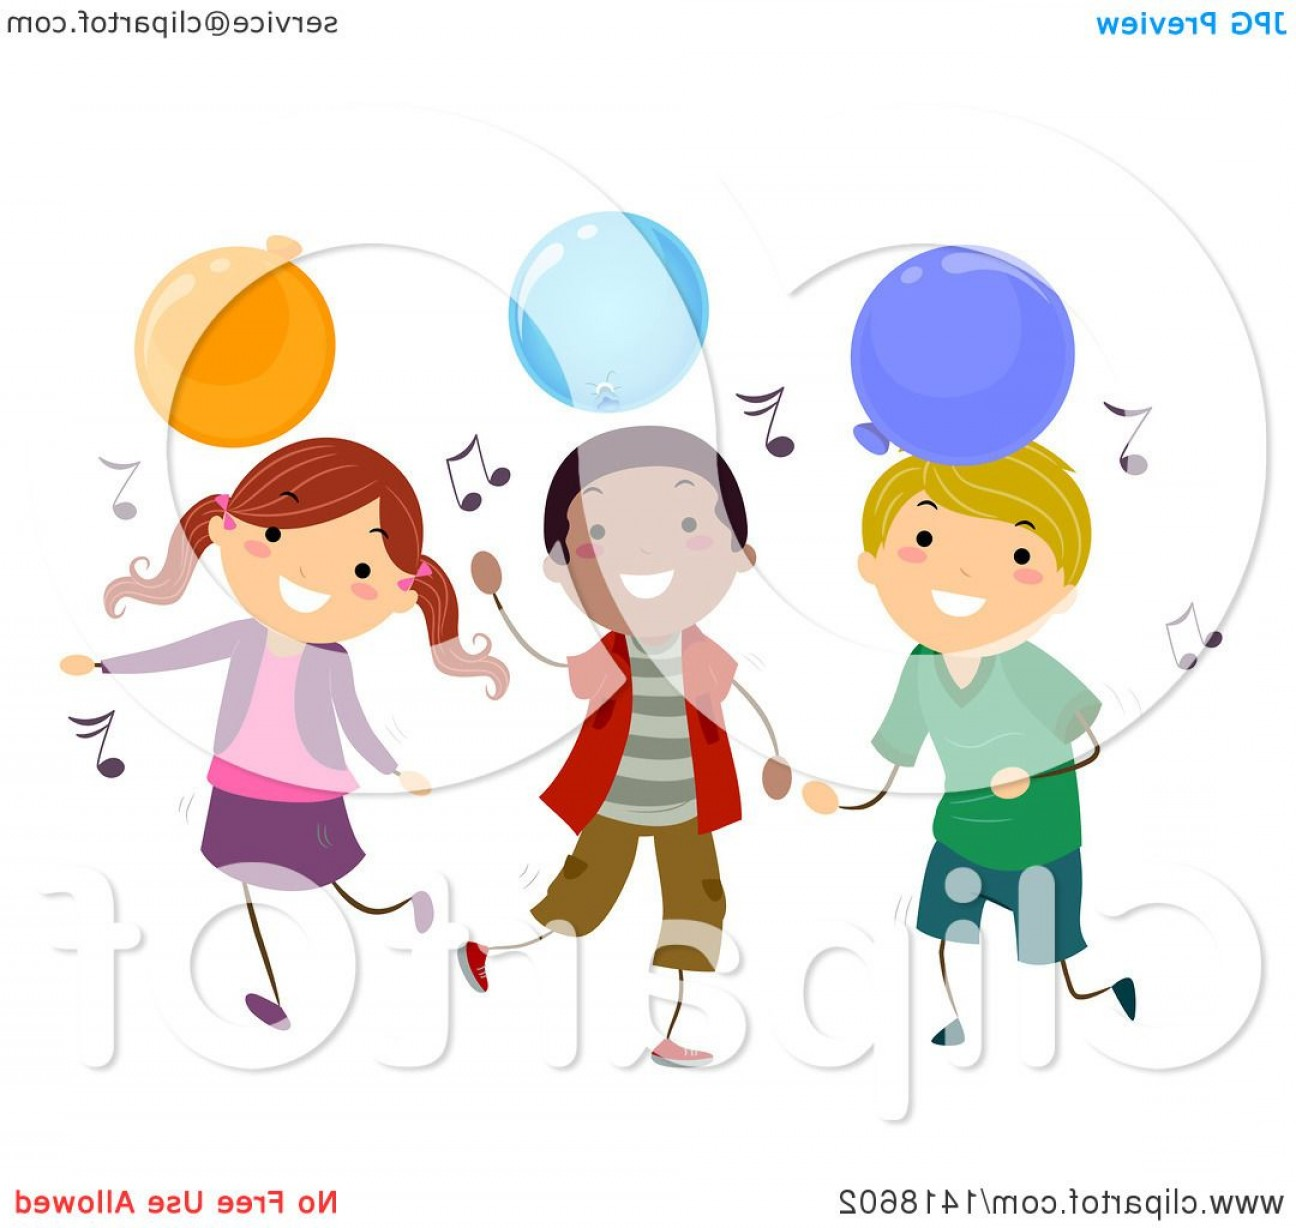 Dancing Musical Notes Vector: Group Of Children Dancing With Music Notes And Party Balloons